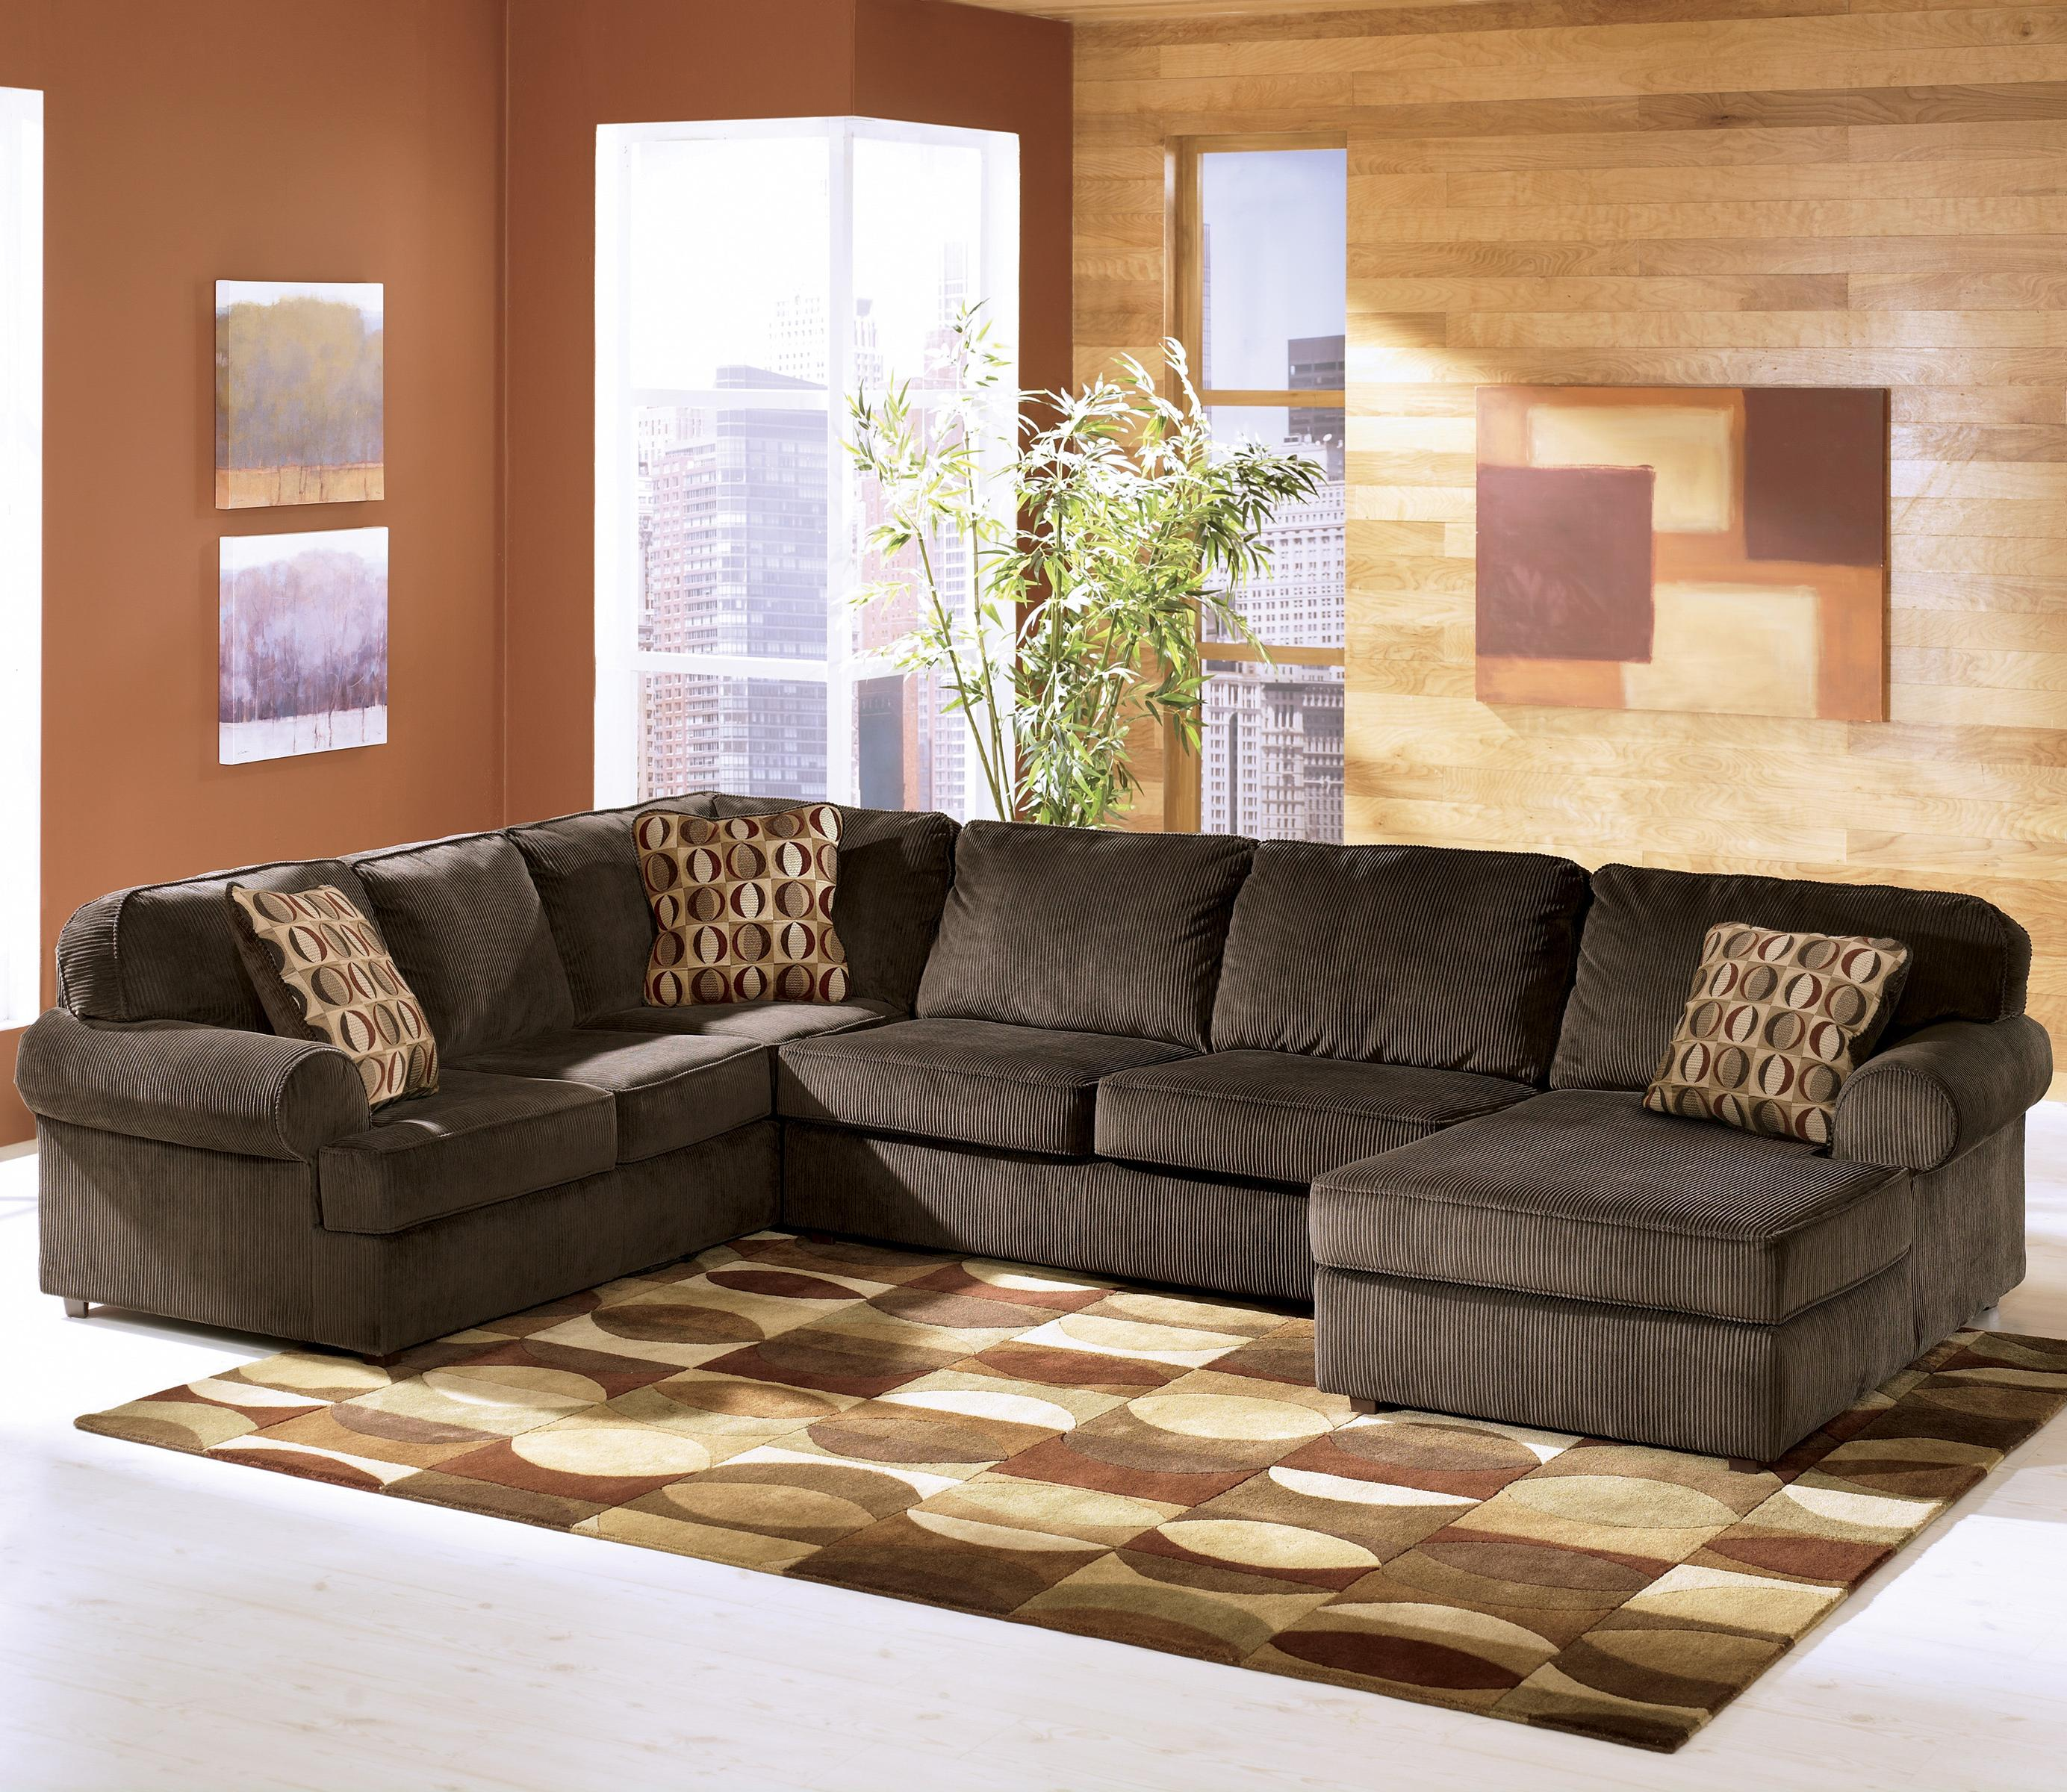 Chocolate Corduroy Sofa Vista Chocolate Casual 3 Piece Sectional With Right Chaise By Ashley Furniture At Lapeer Furniture Mattress Center